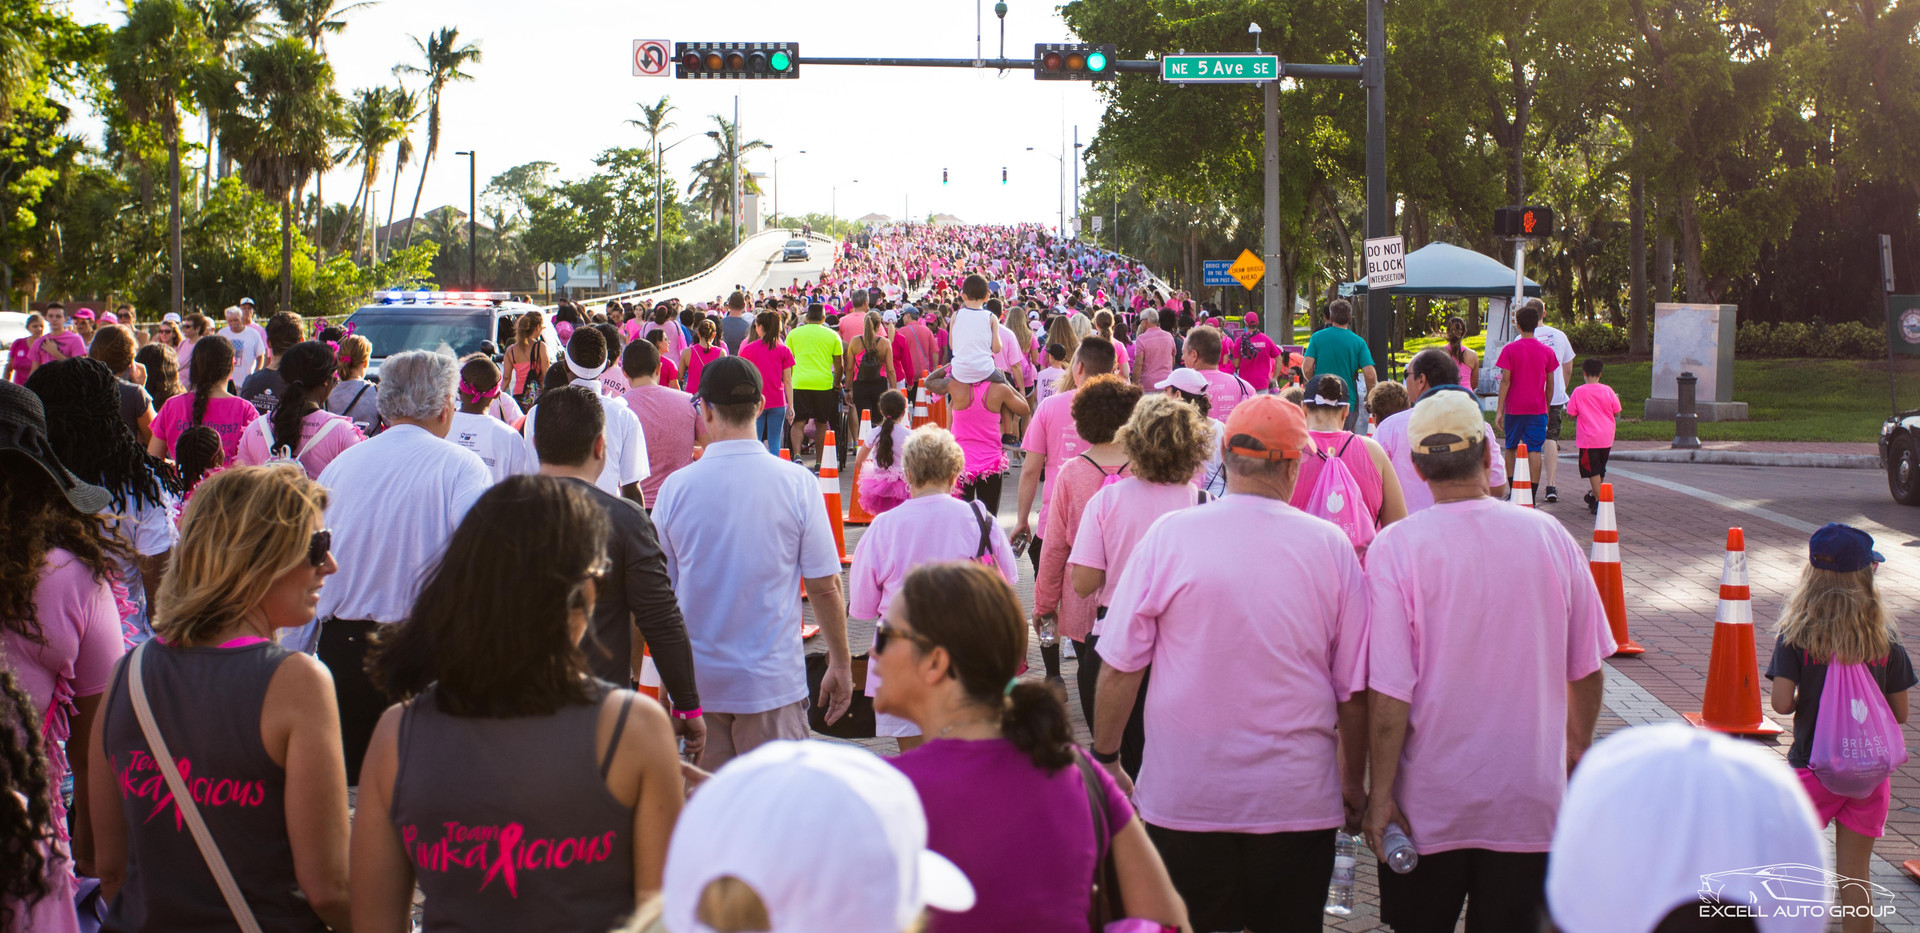 BreastCancerWalk2017-49.jpg